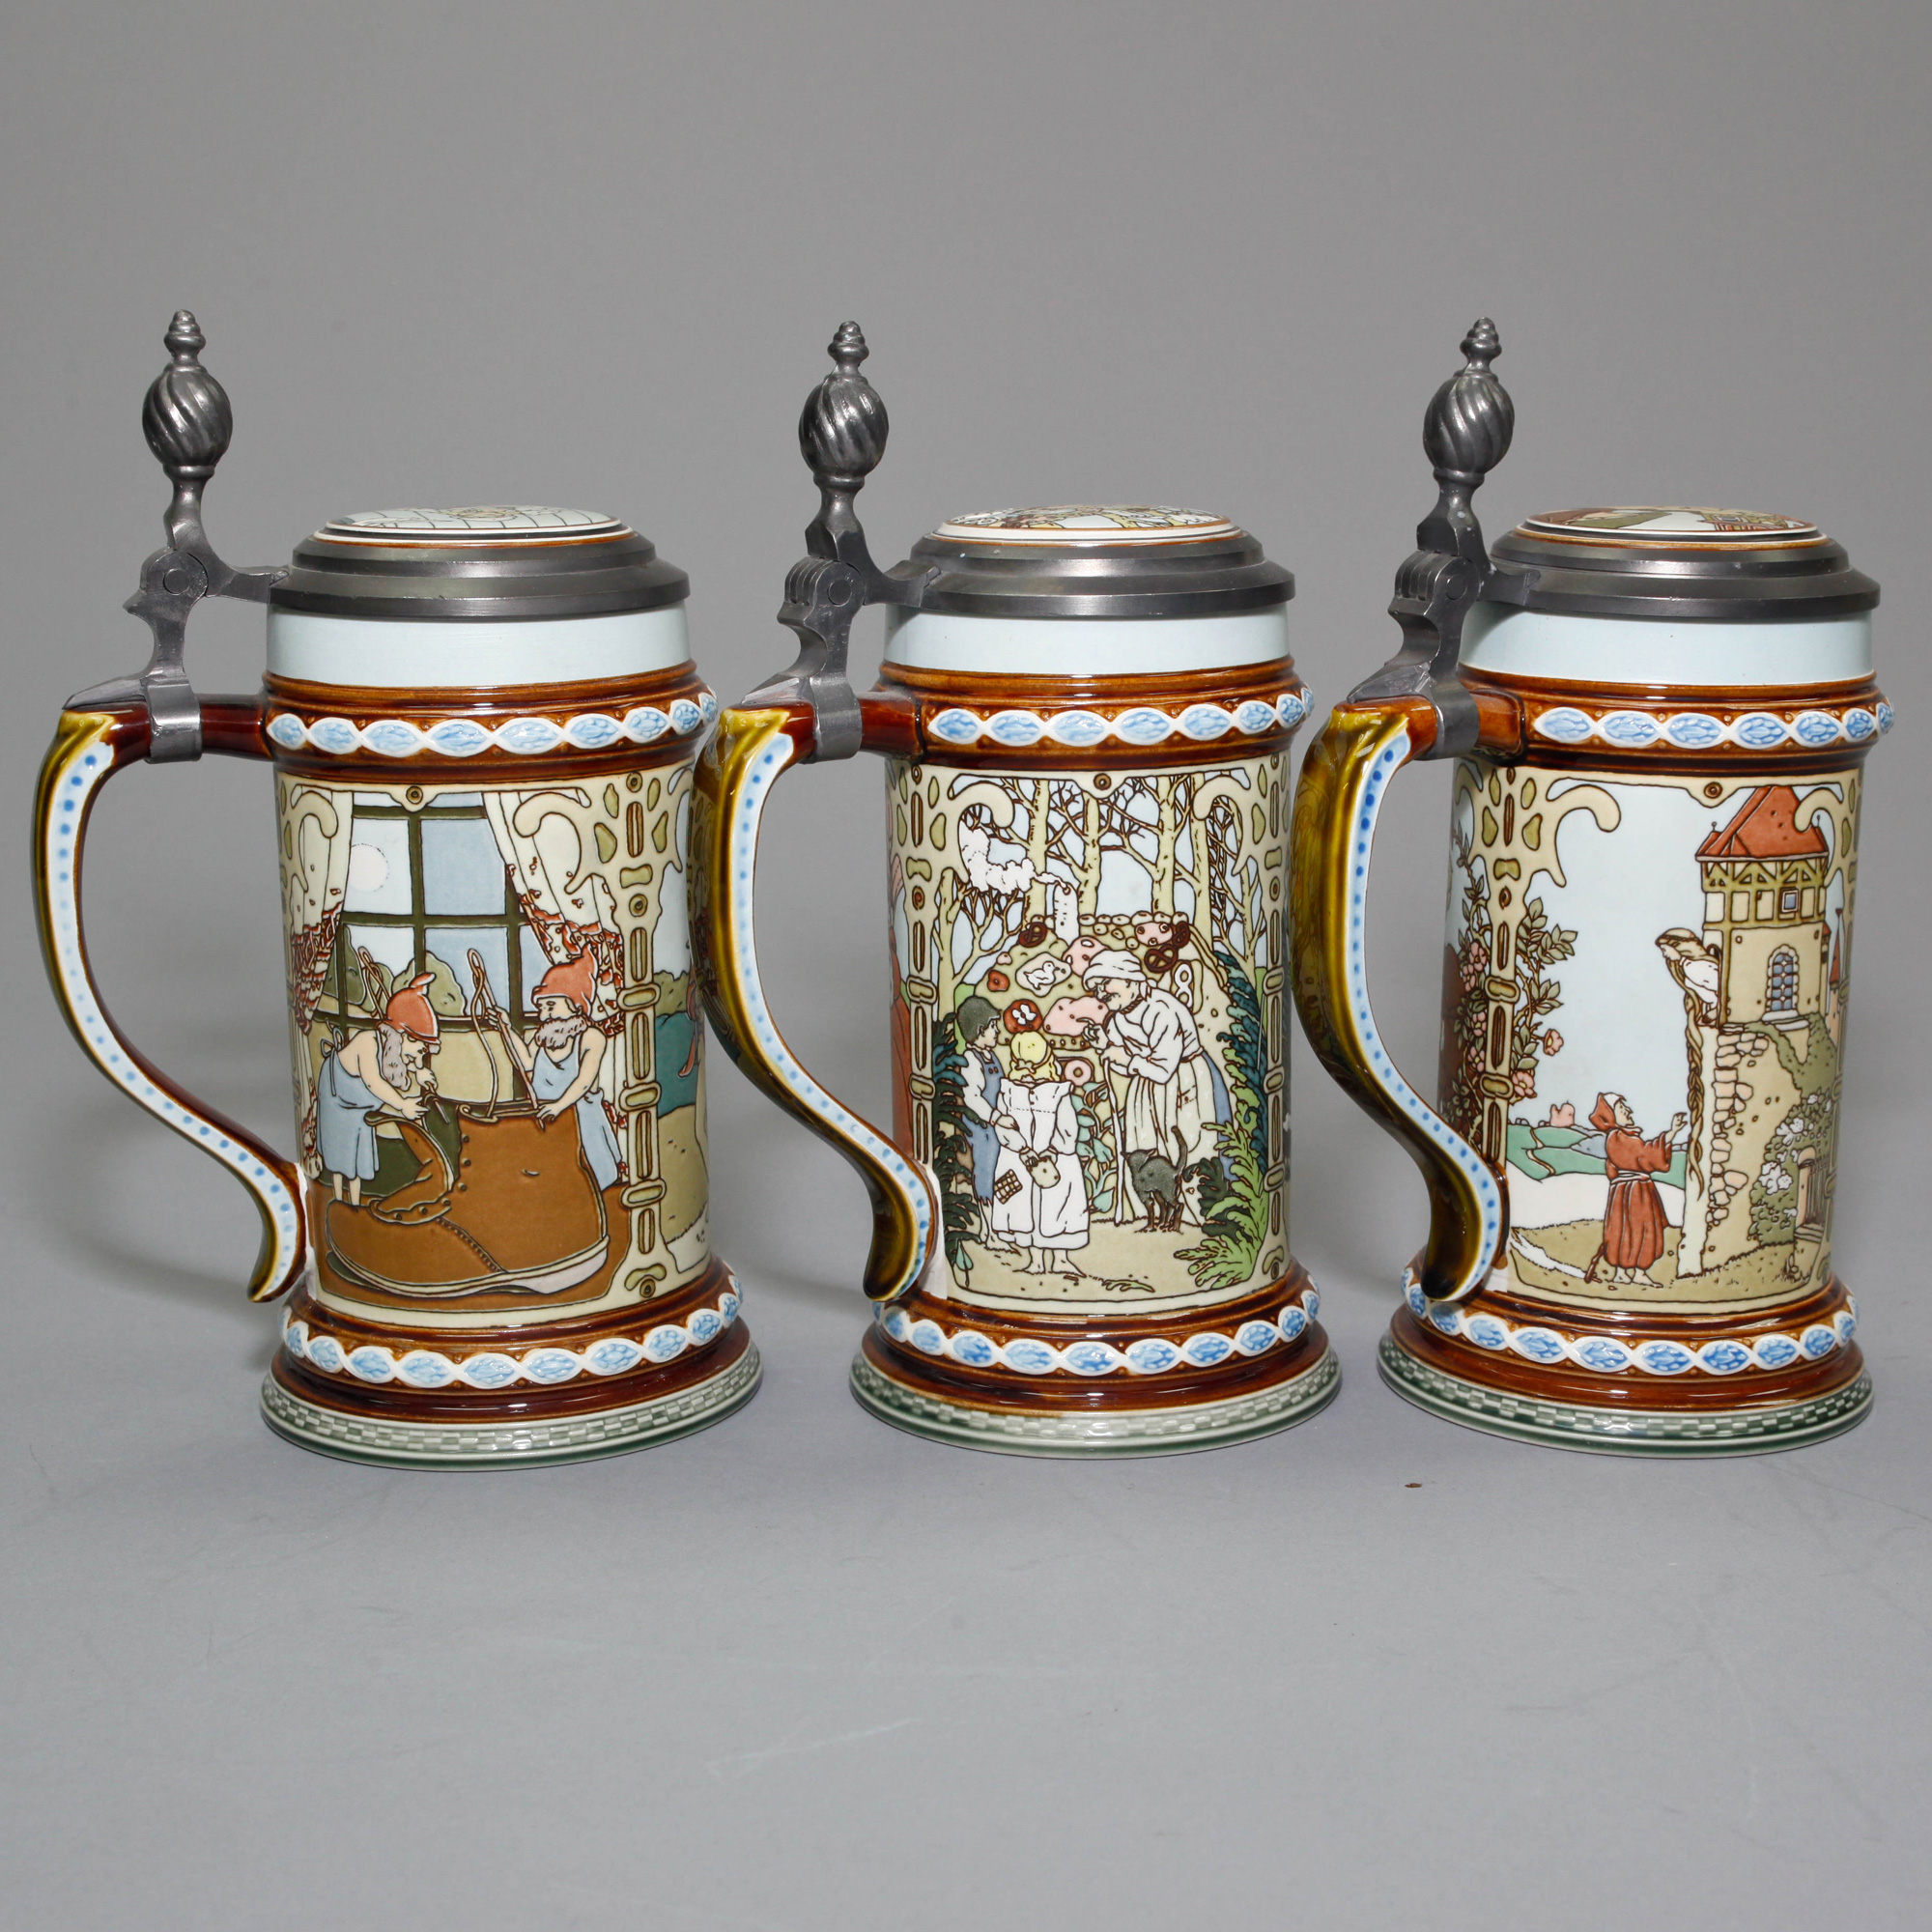 Villeroy And Boch Villeroy And Boch Fairytale Collection 3 Tankards Seaway